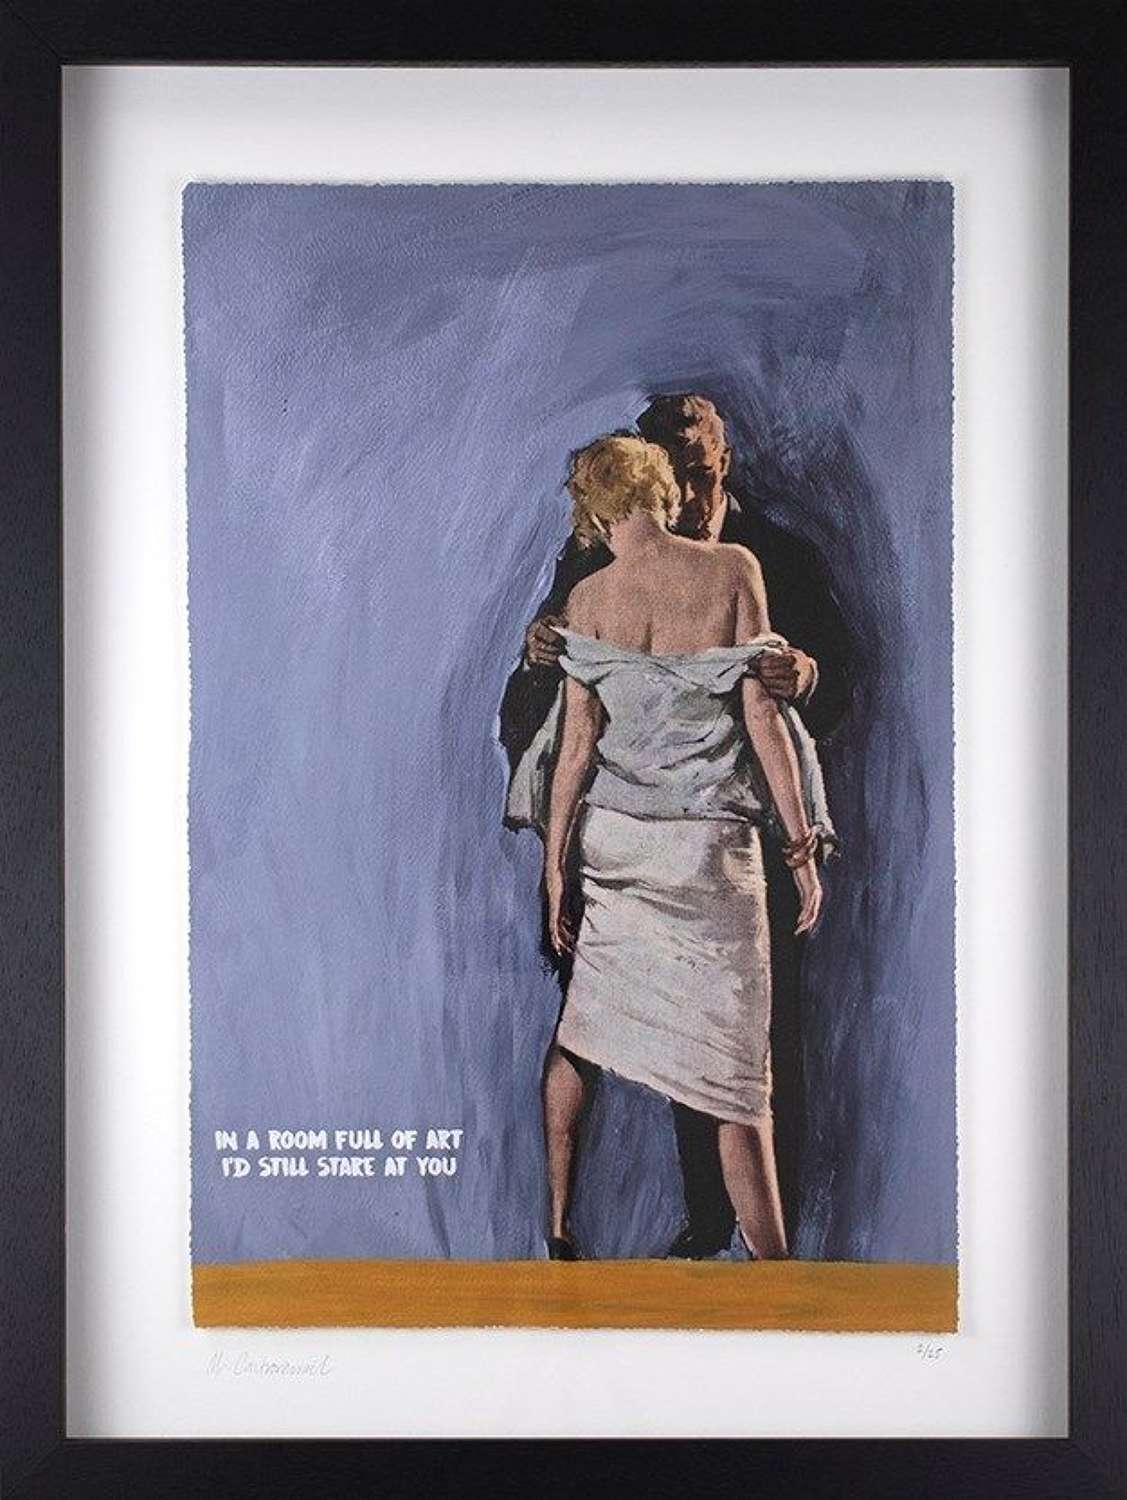 In A Room Full Of Art - Framed Art Print by Mr Controversial